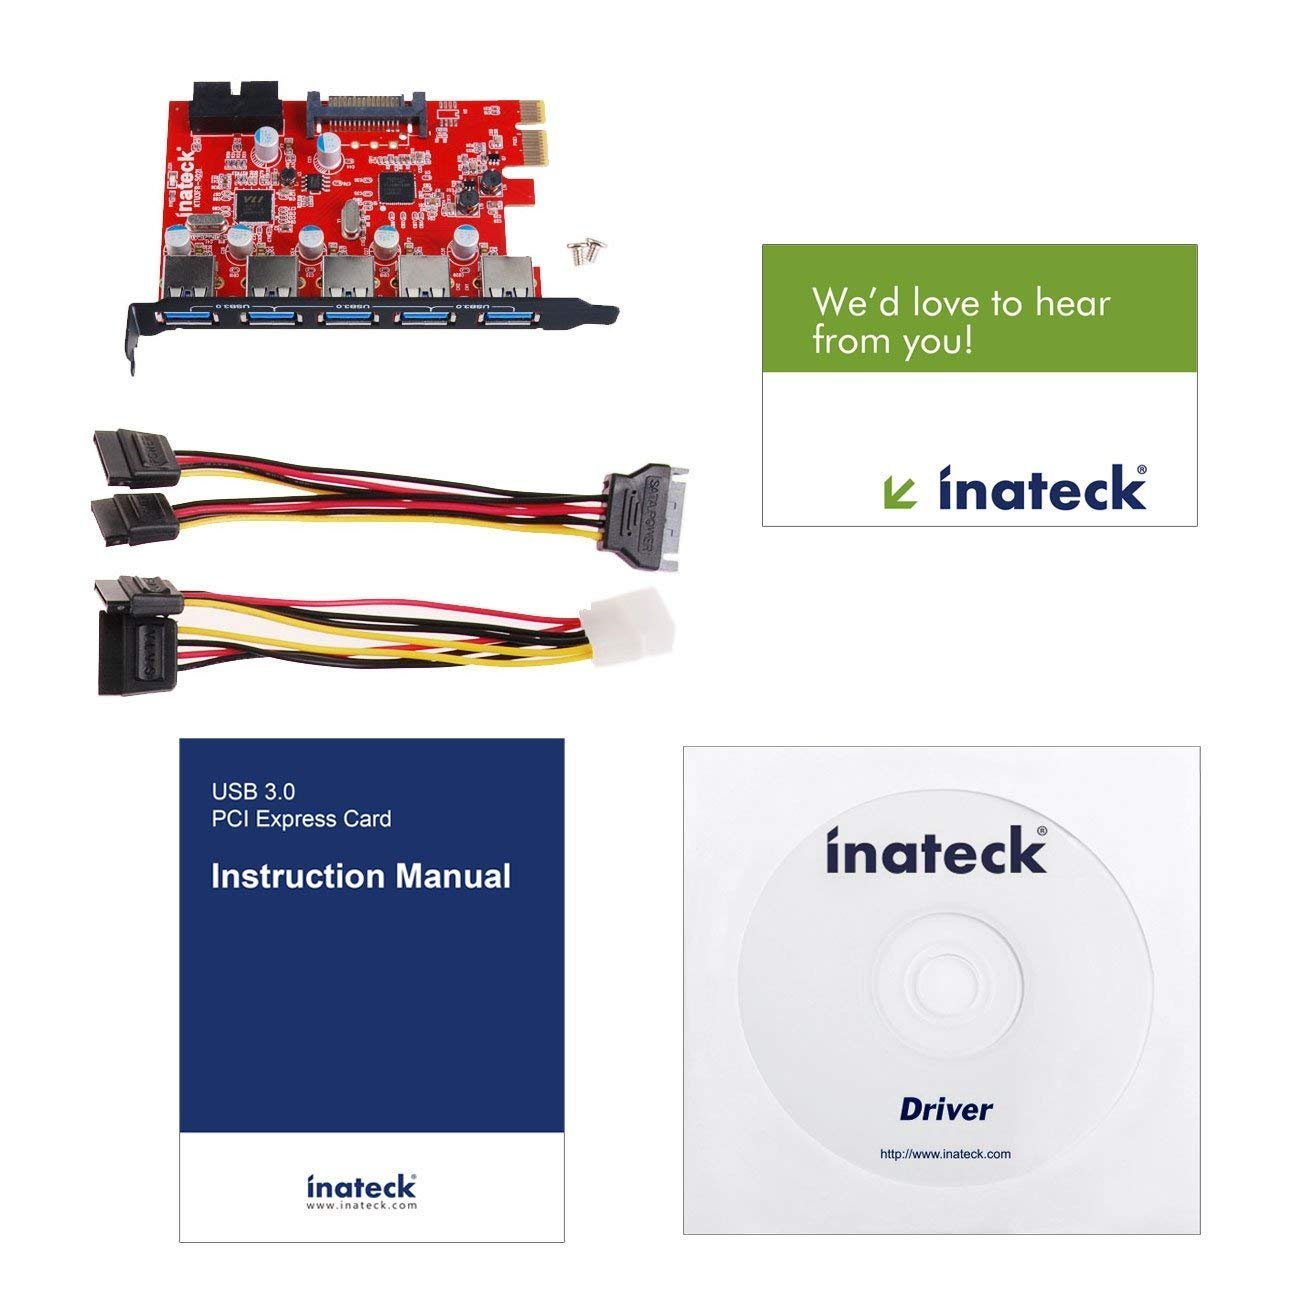 Red Inateck KT5001 5 Ports USB 3.0 PCI Express Card and 15 Pin Power Connector